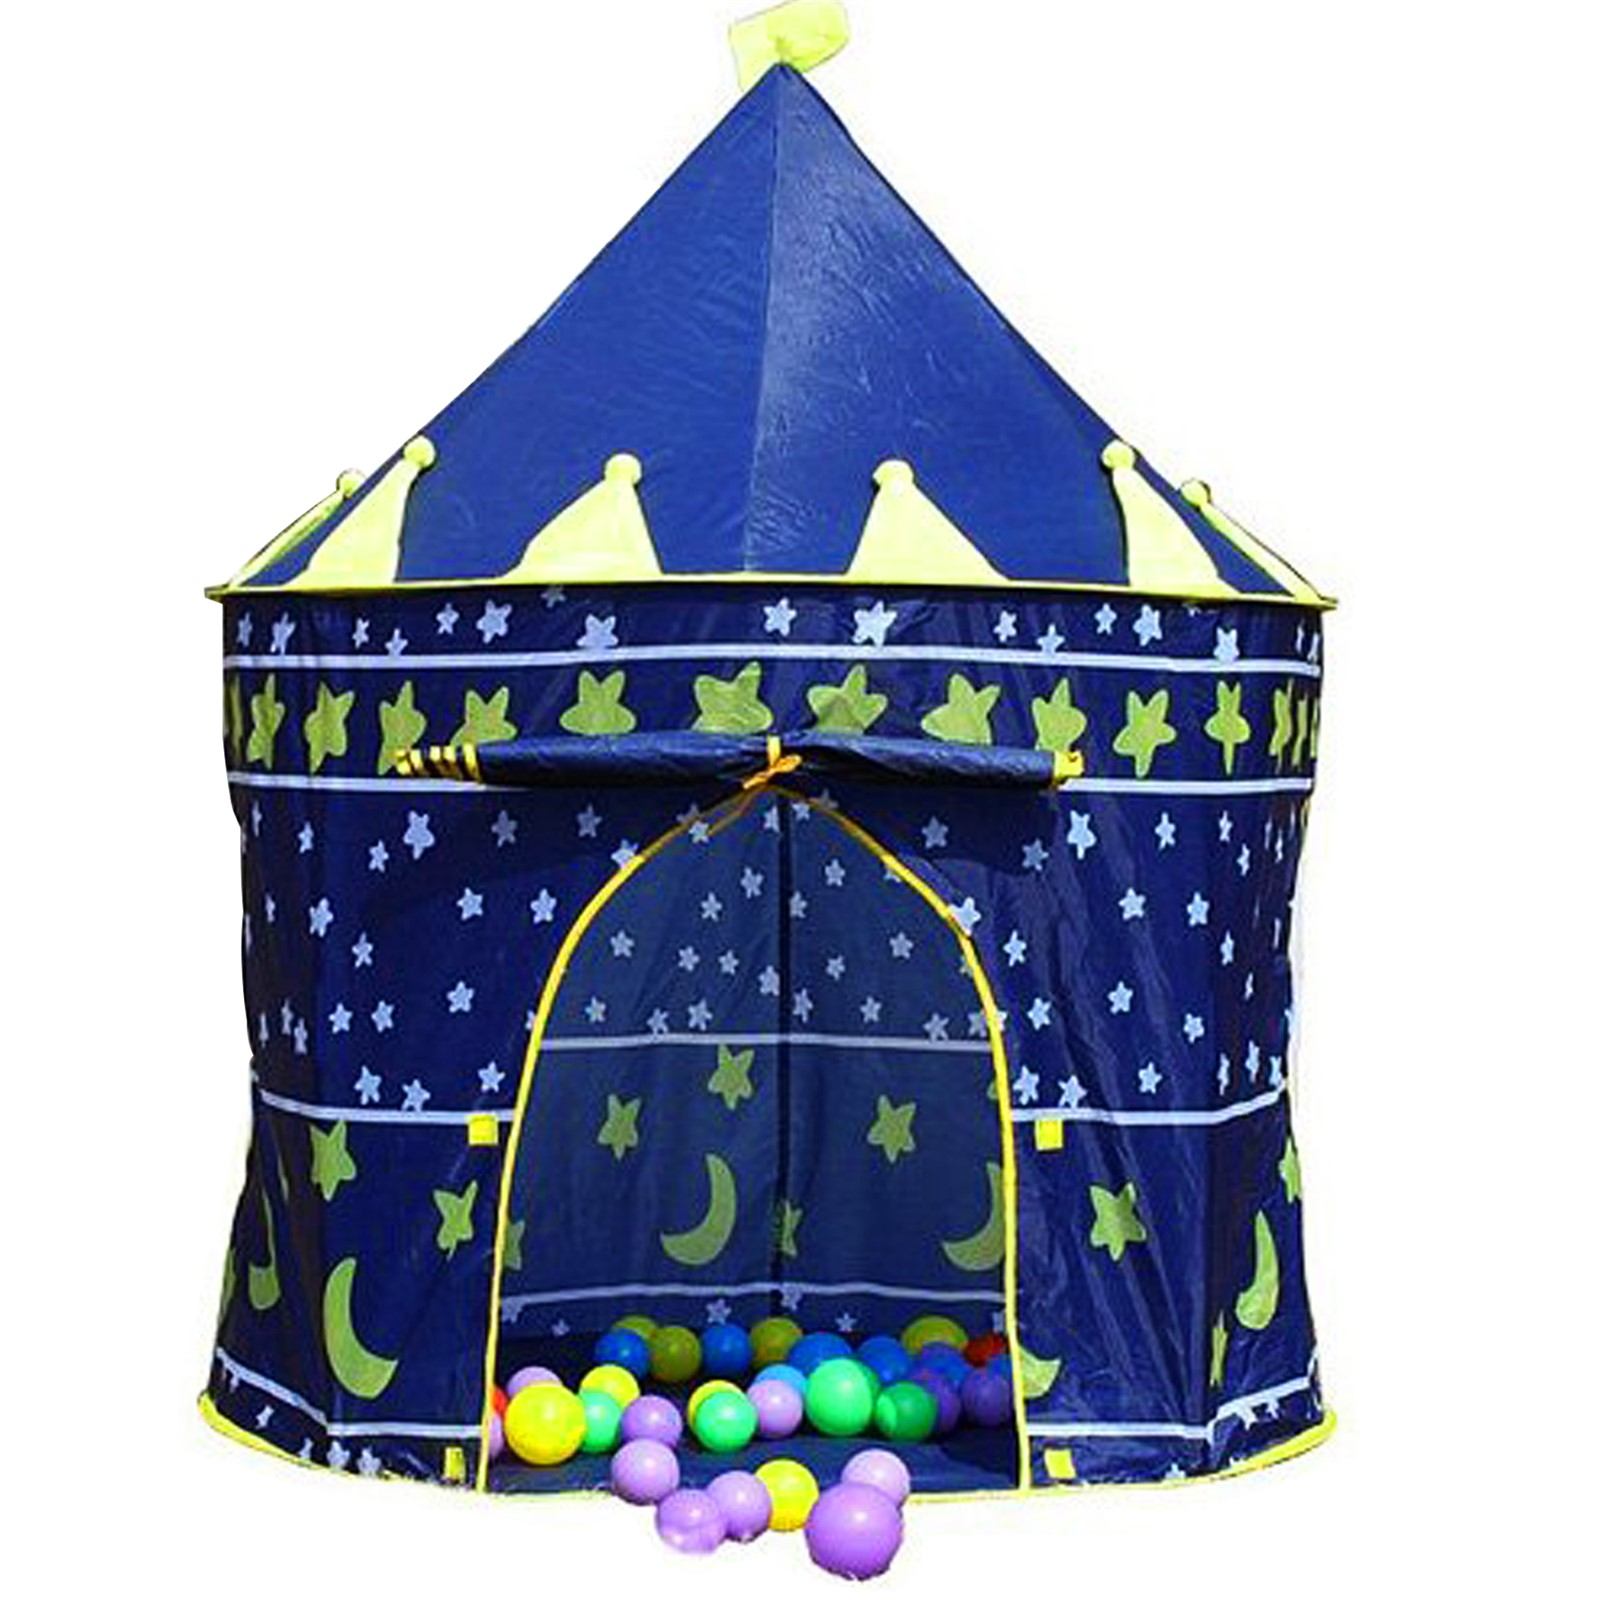 CHILDRENS-KIDS-POP-UP-CASTLE-PLAYHOUSE-GIRLS-PRINCESS-  sc 1 st  eBay : pop up childrens tent - memphite.com